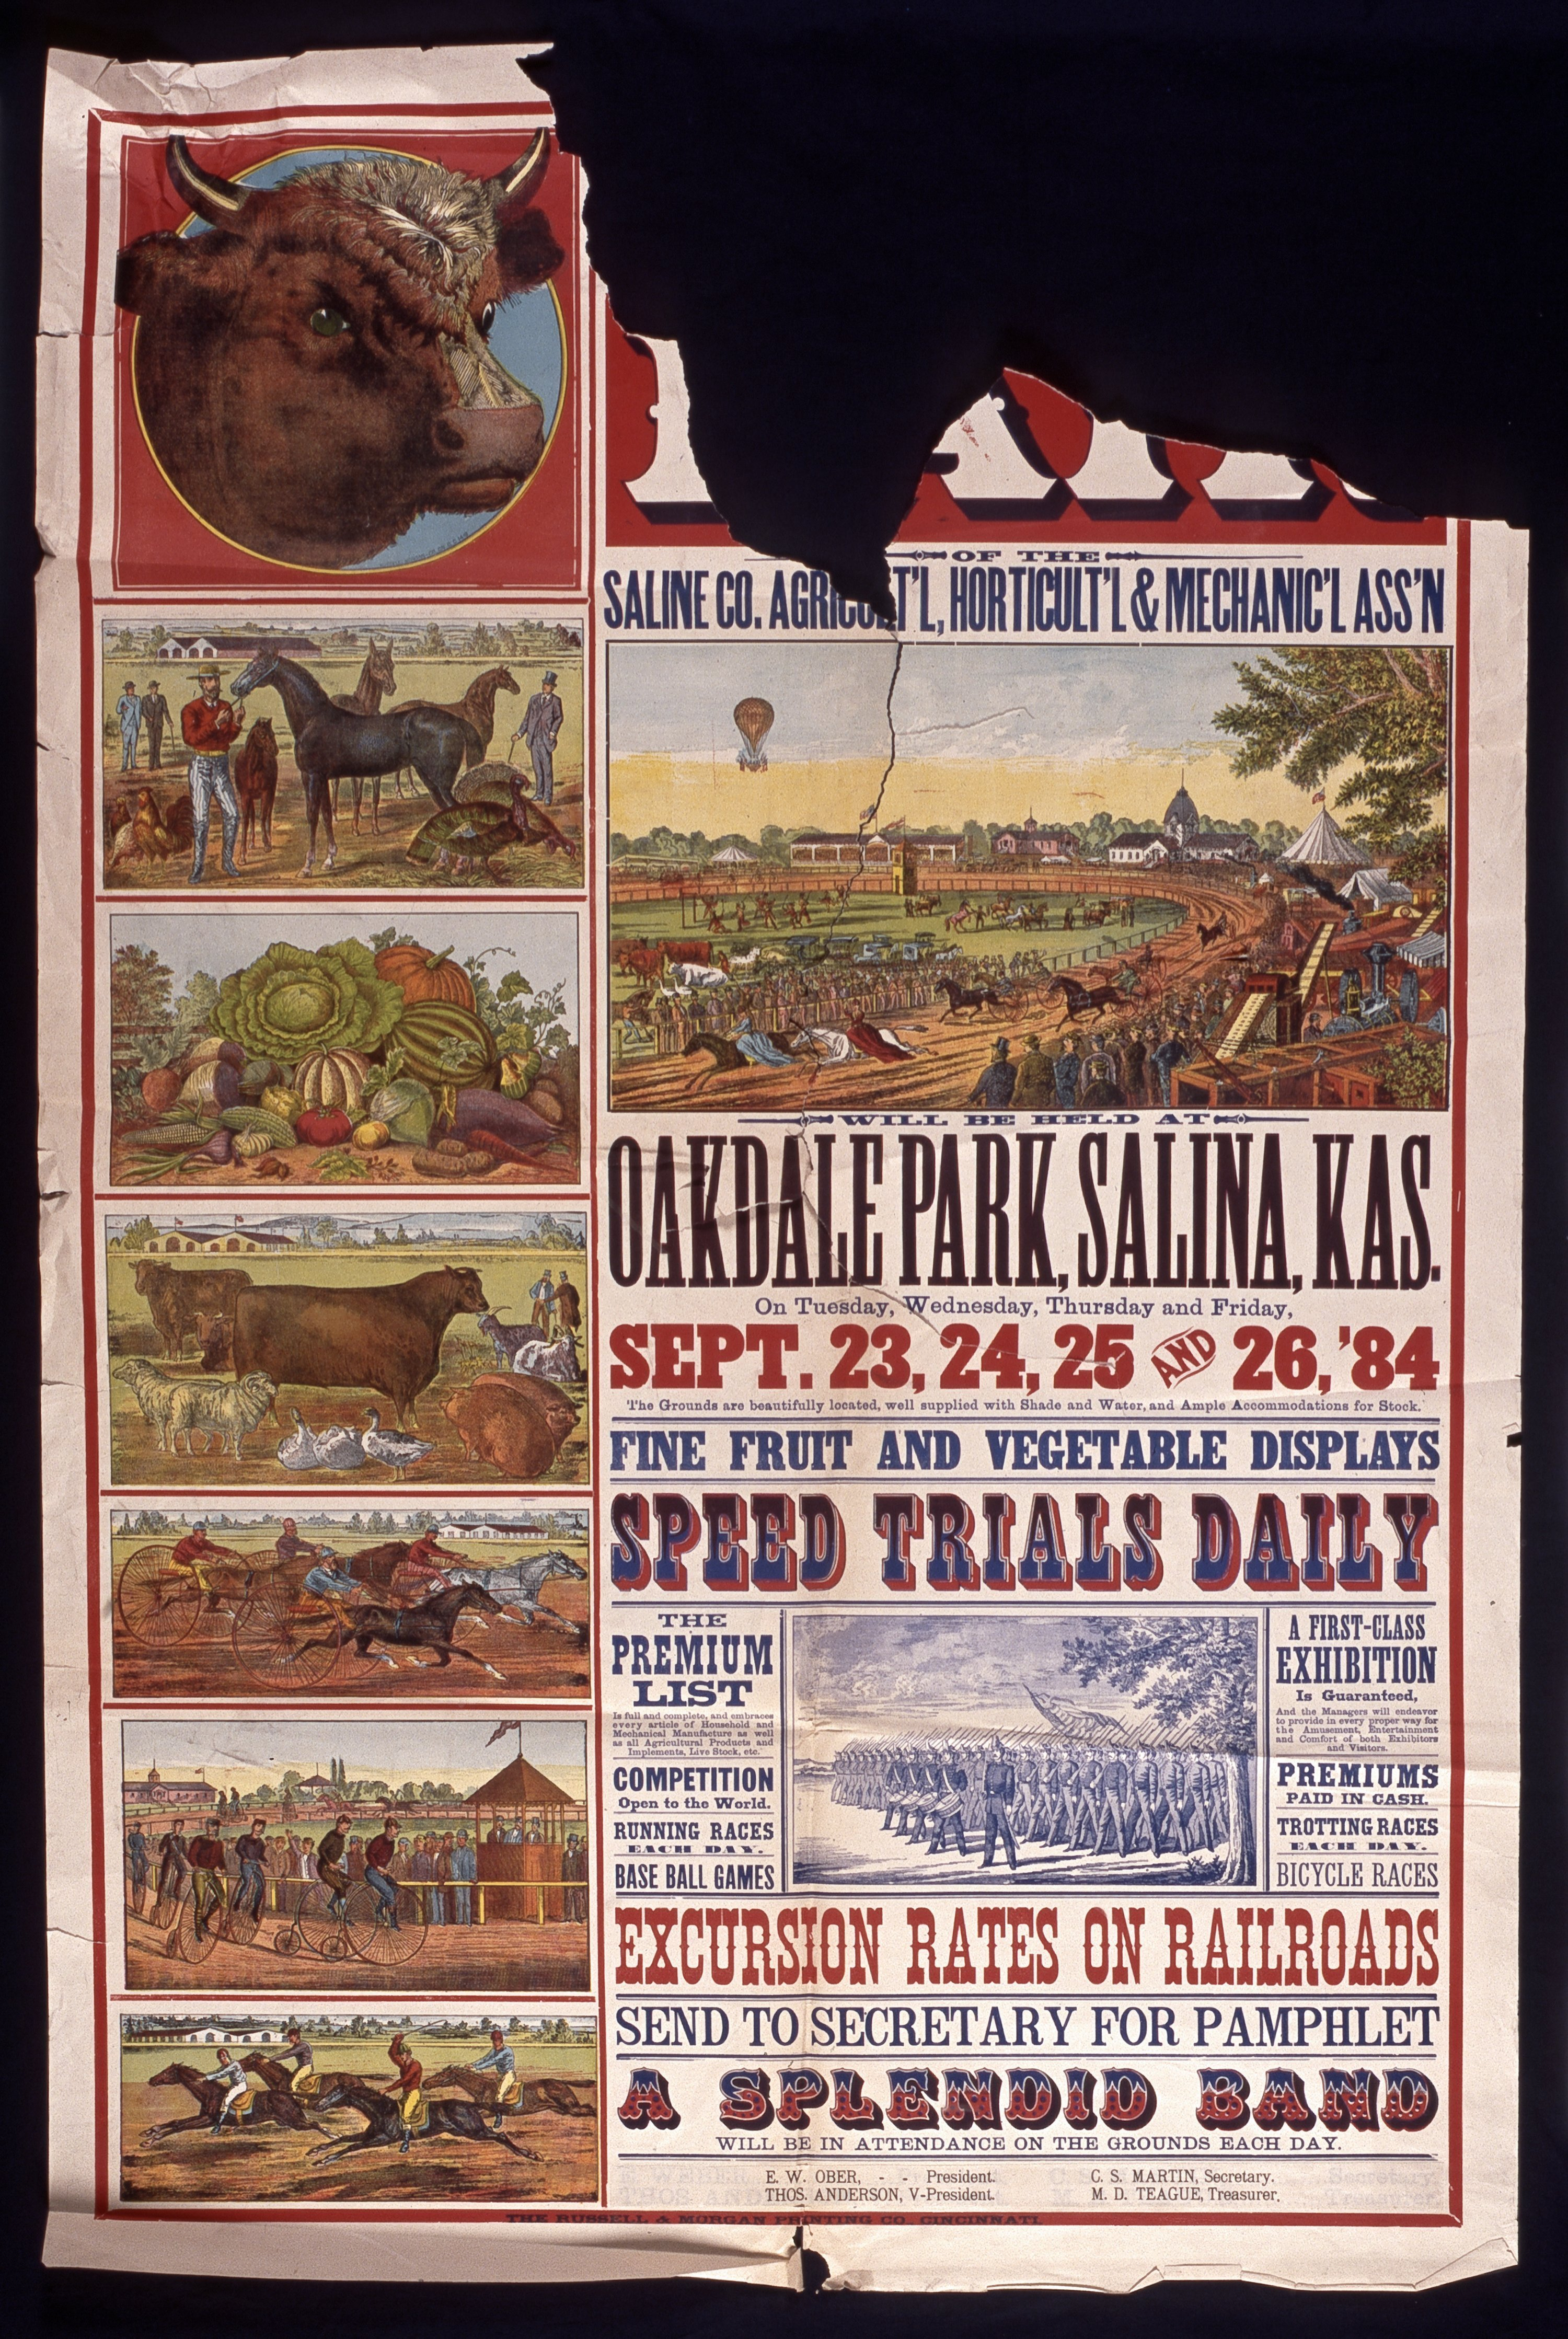 Annual fair of the Saline County Agricultural, Horticultural & Mechanical Association